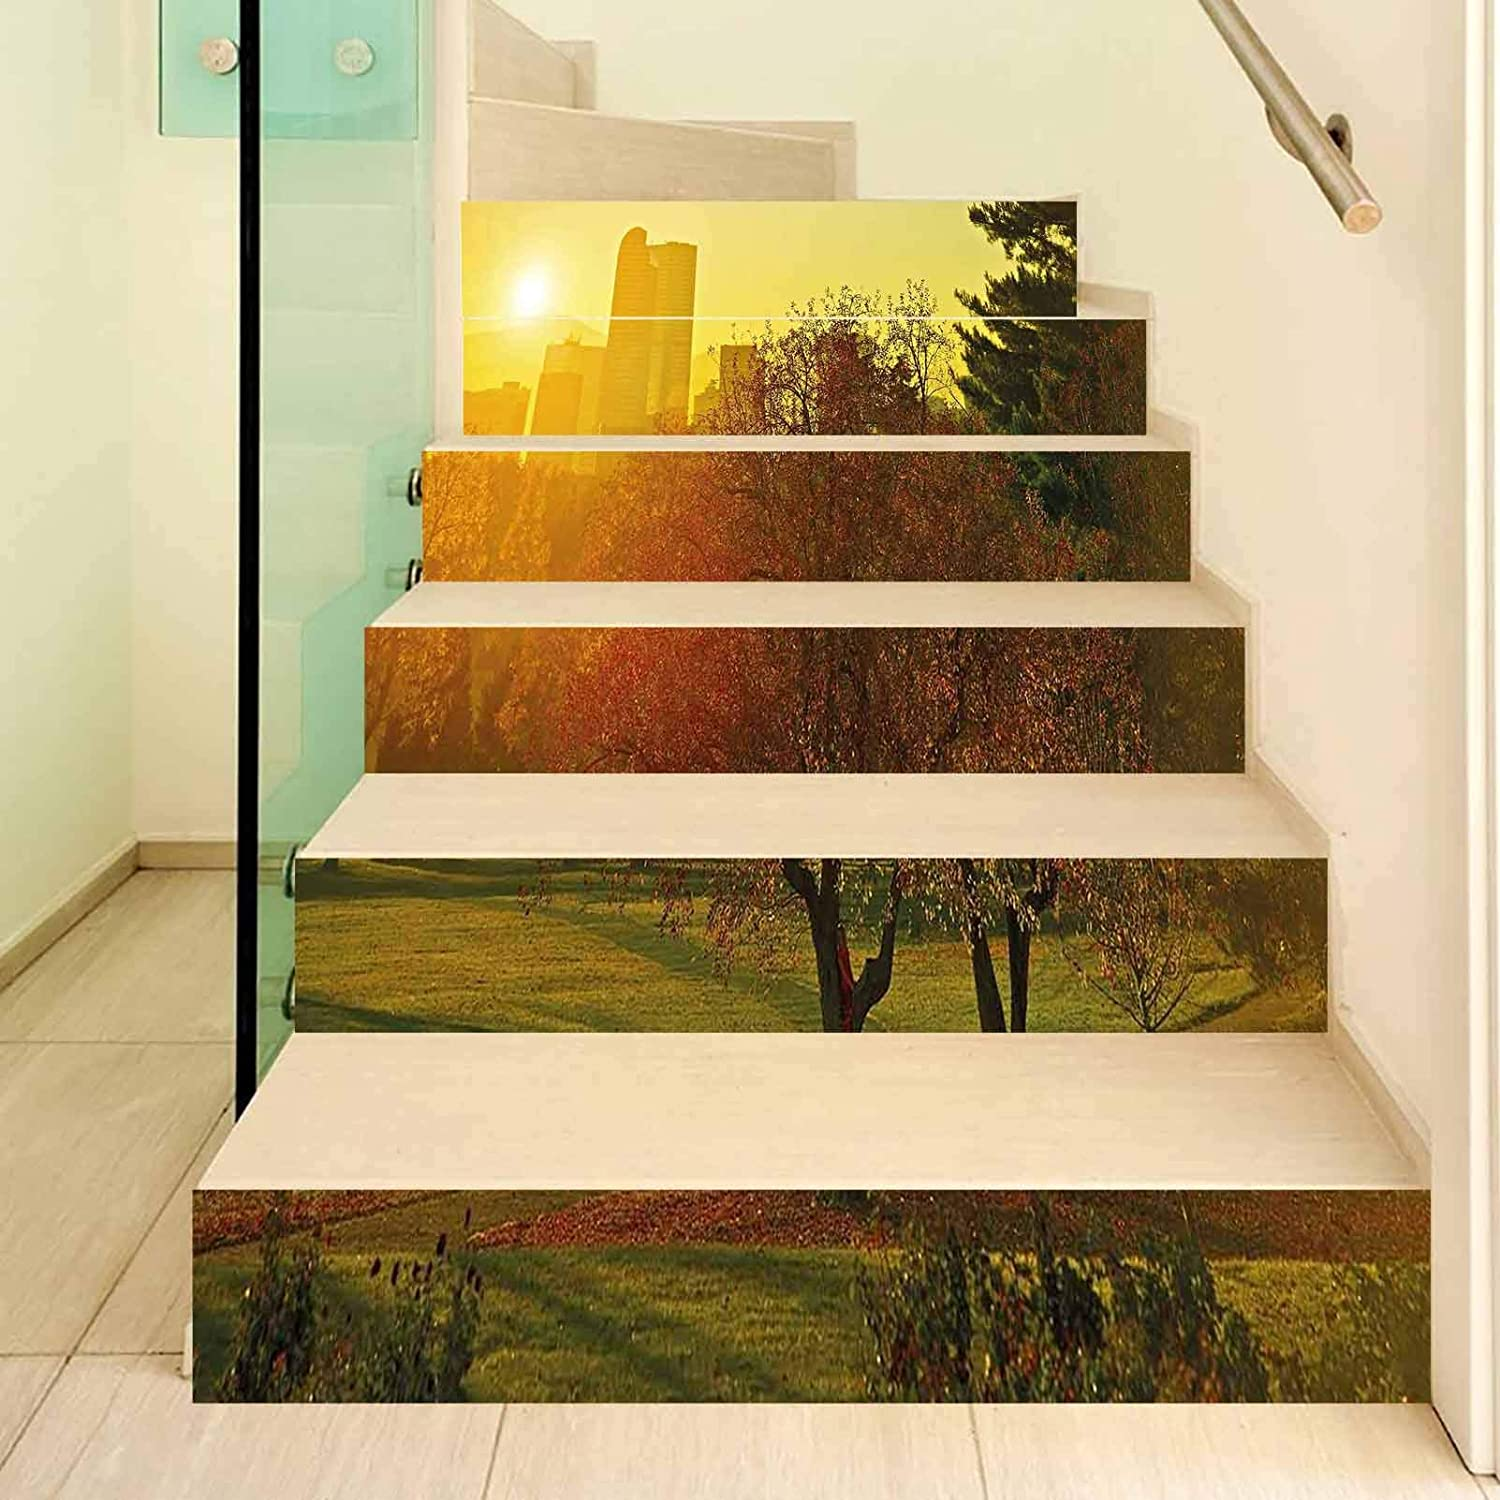 Nature 3D Stair Stickers Decals-6Pcs/Set,Sunset over the City Park Colorado Skyline Autumn Theme Scenic Picture Stair Risers Stickers Removable Staircase Decals Mural Wallpaper for Home Decor